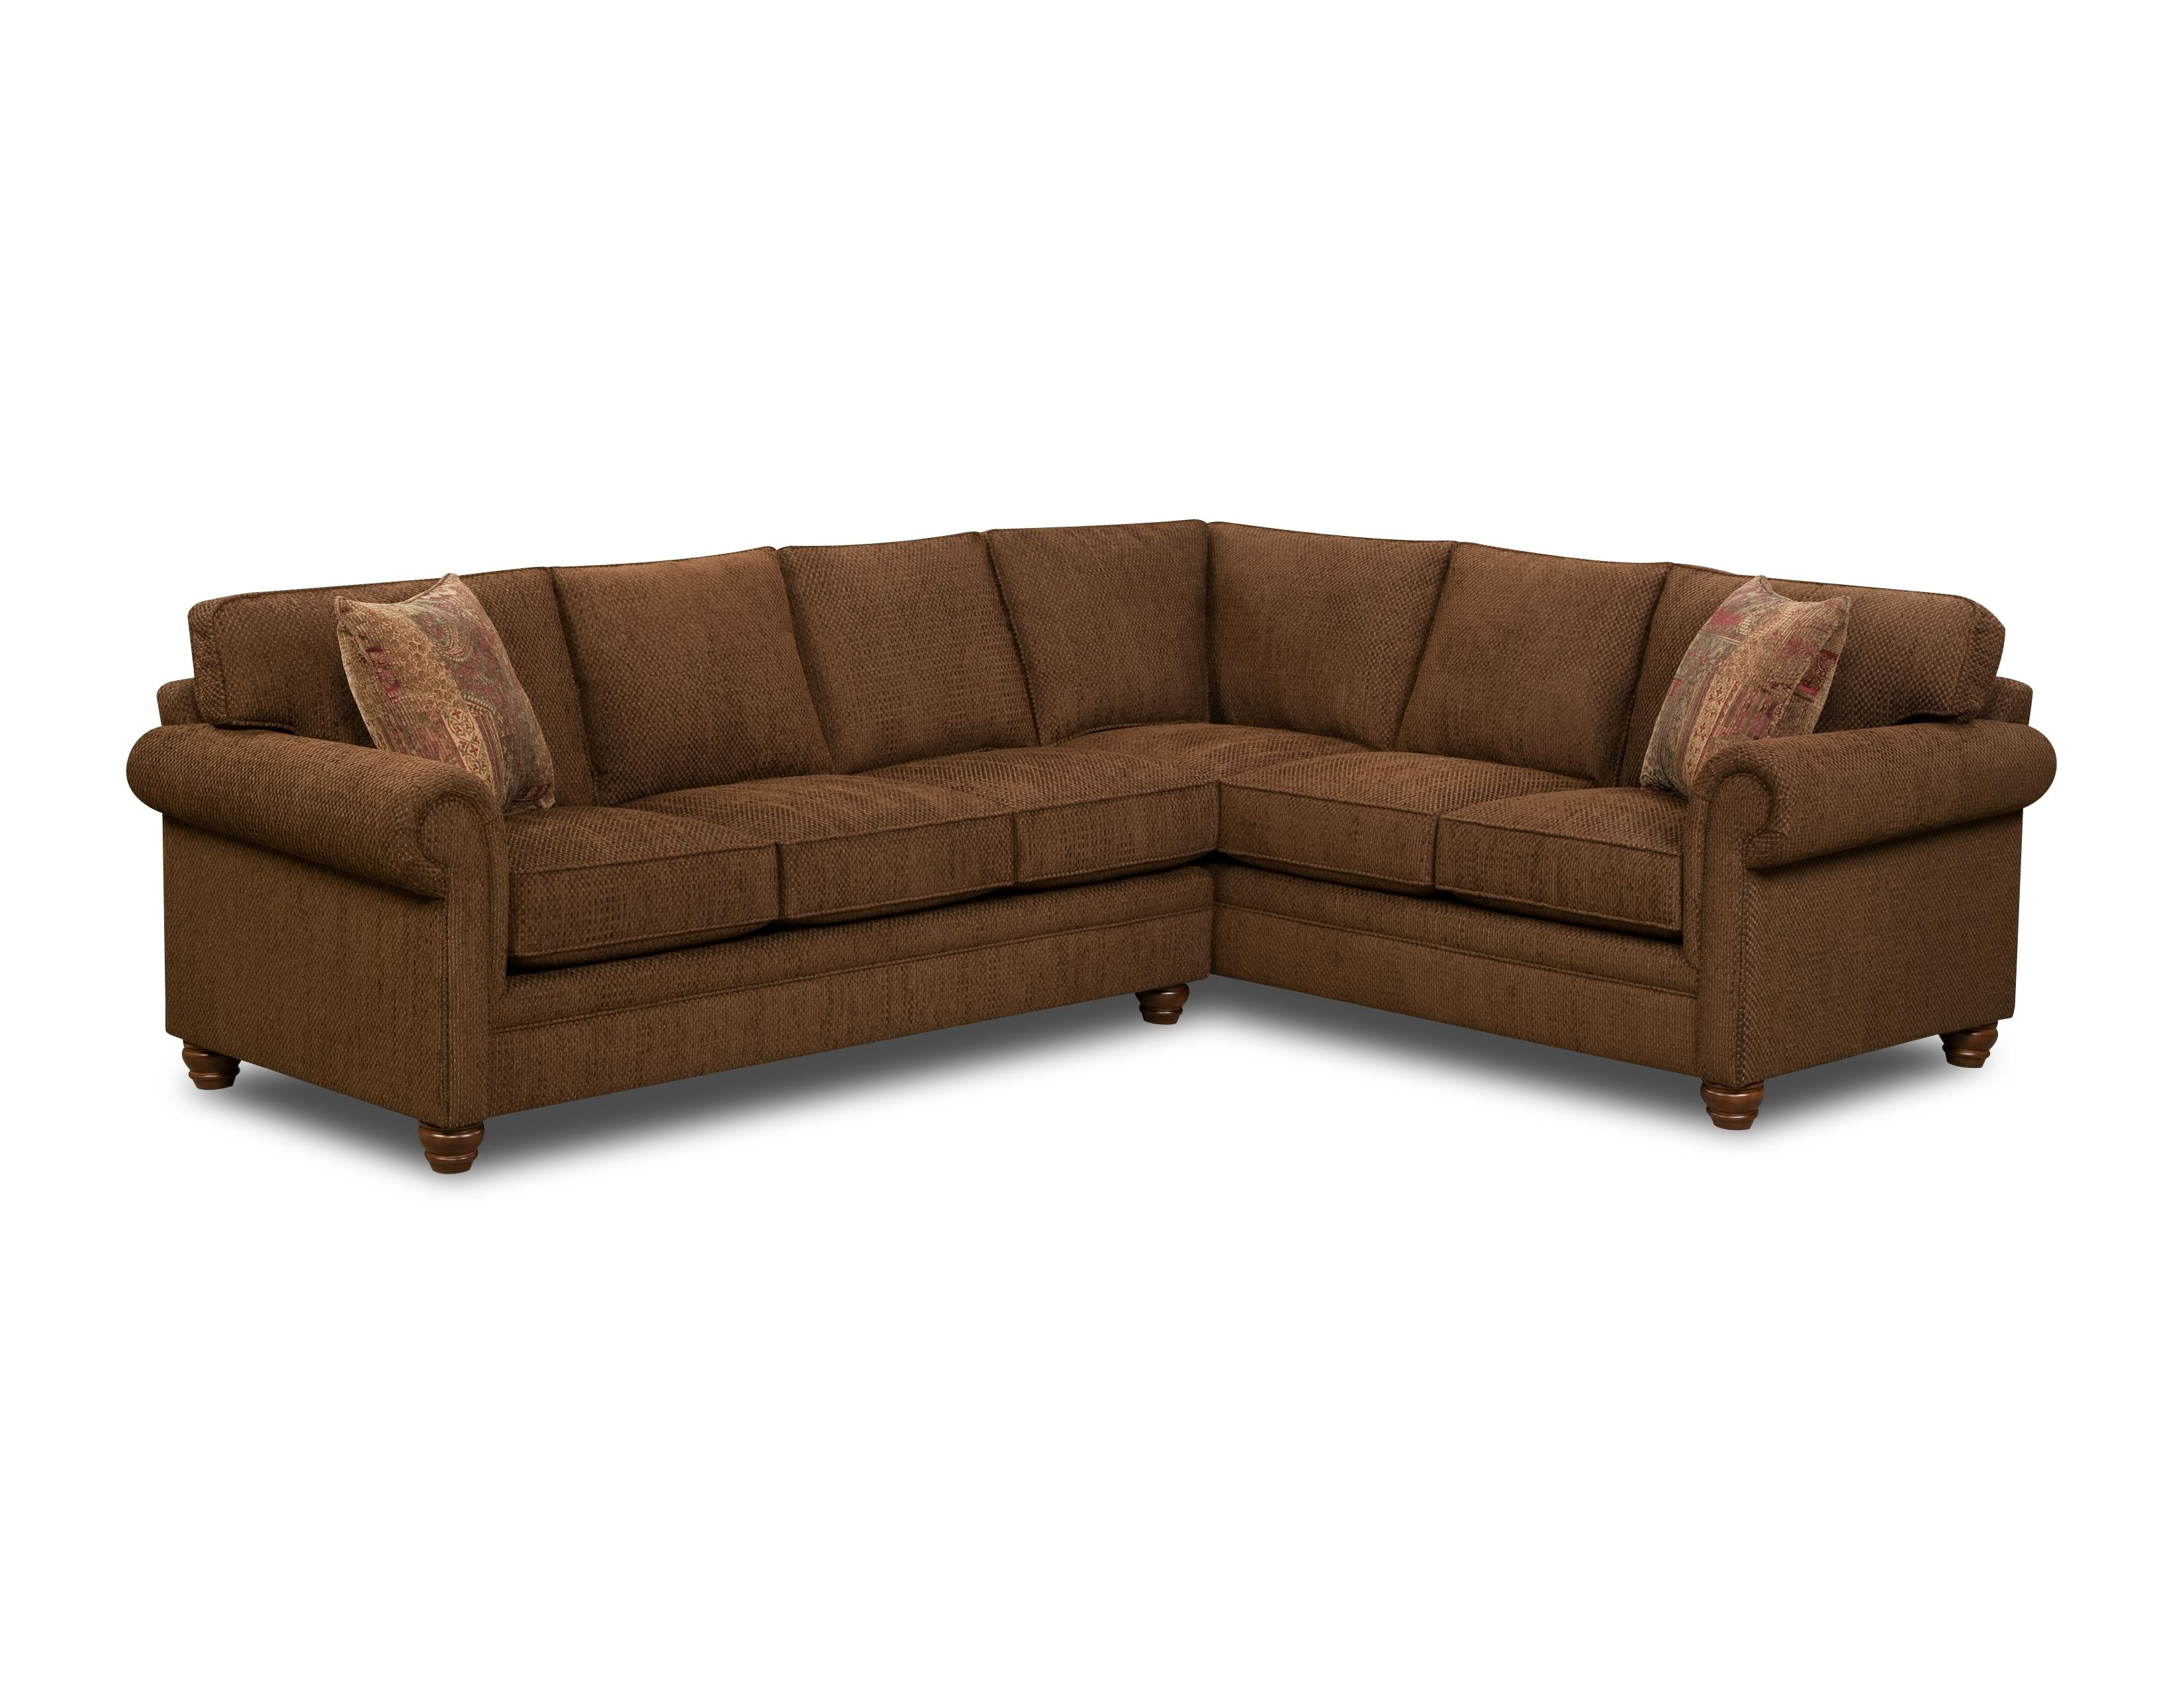 bauhaus sofas products where can i rent a sofa steam cleaner sectional d02 casual rolled arm